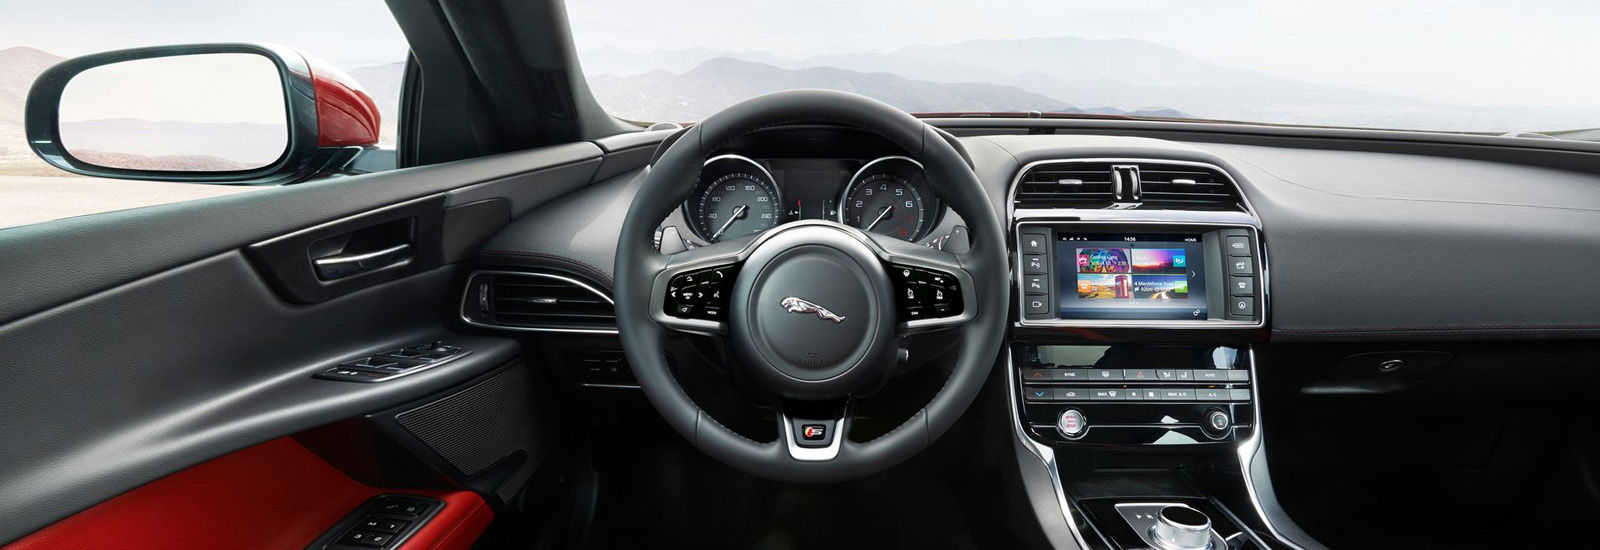 2018 jaguar xe interior.  interior the xe svru0027s interior will be similar to the su0027s shown but could add  carbon fibre trim pieces in 2018 jaguar xe n